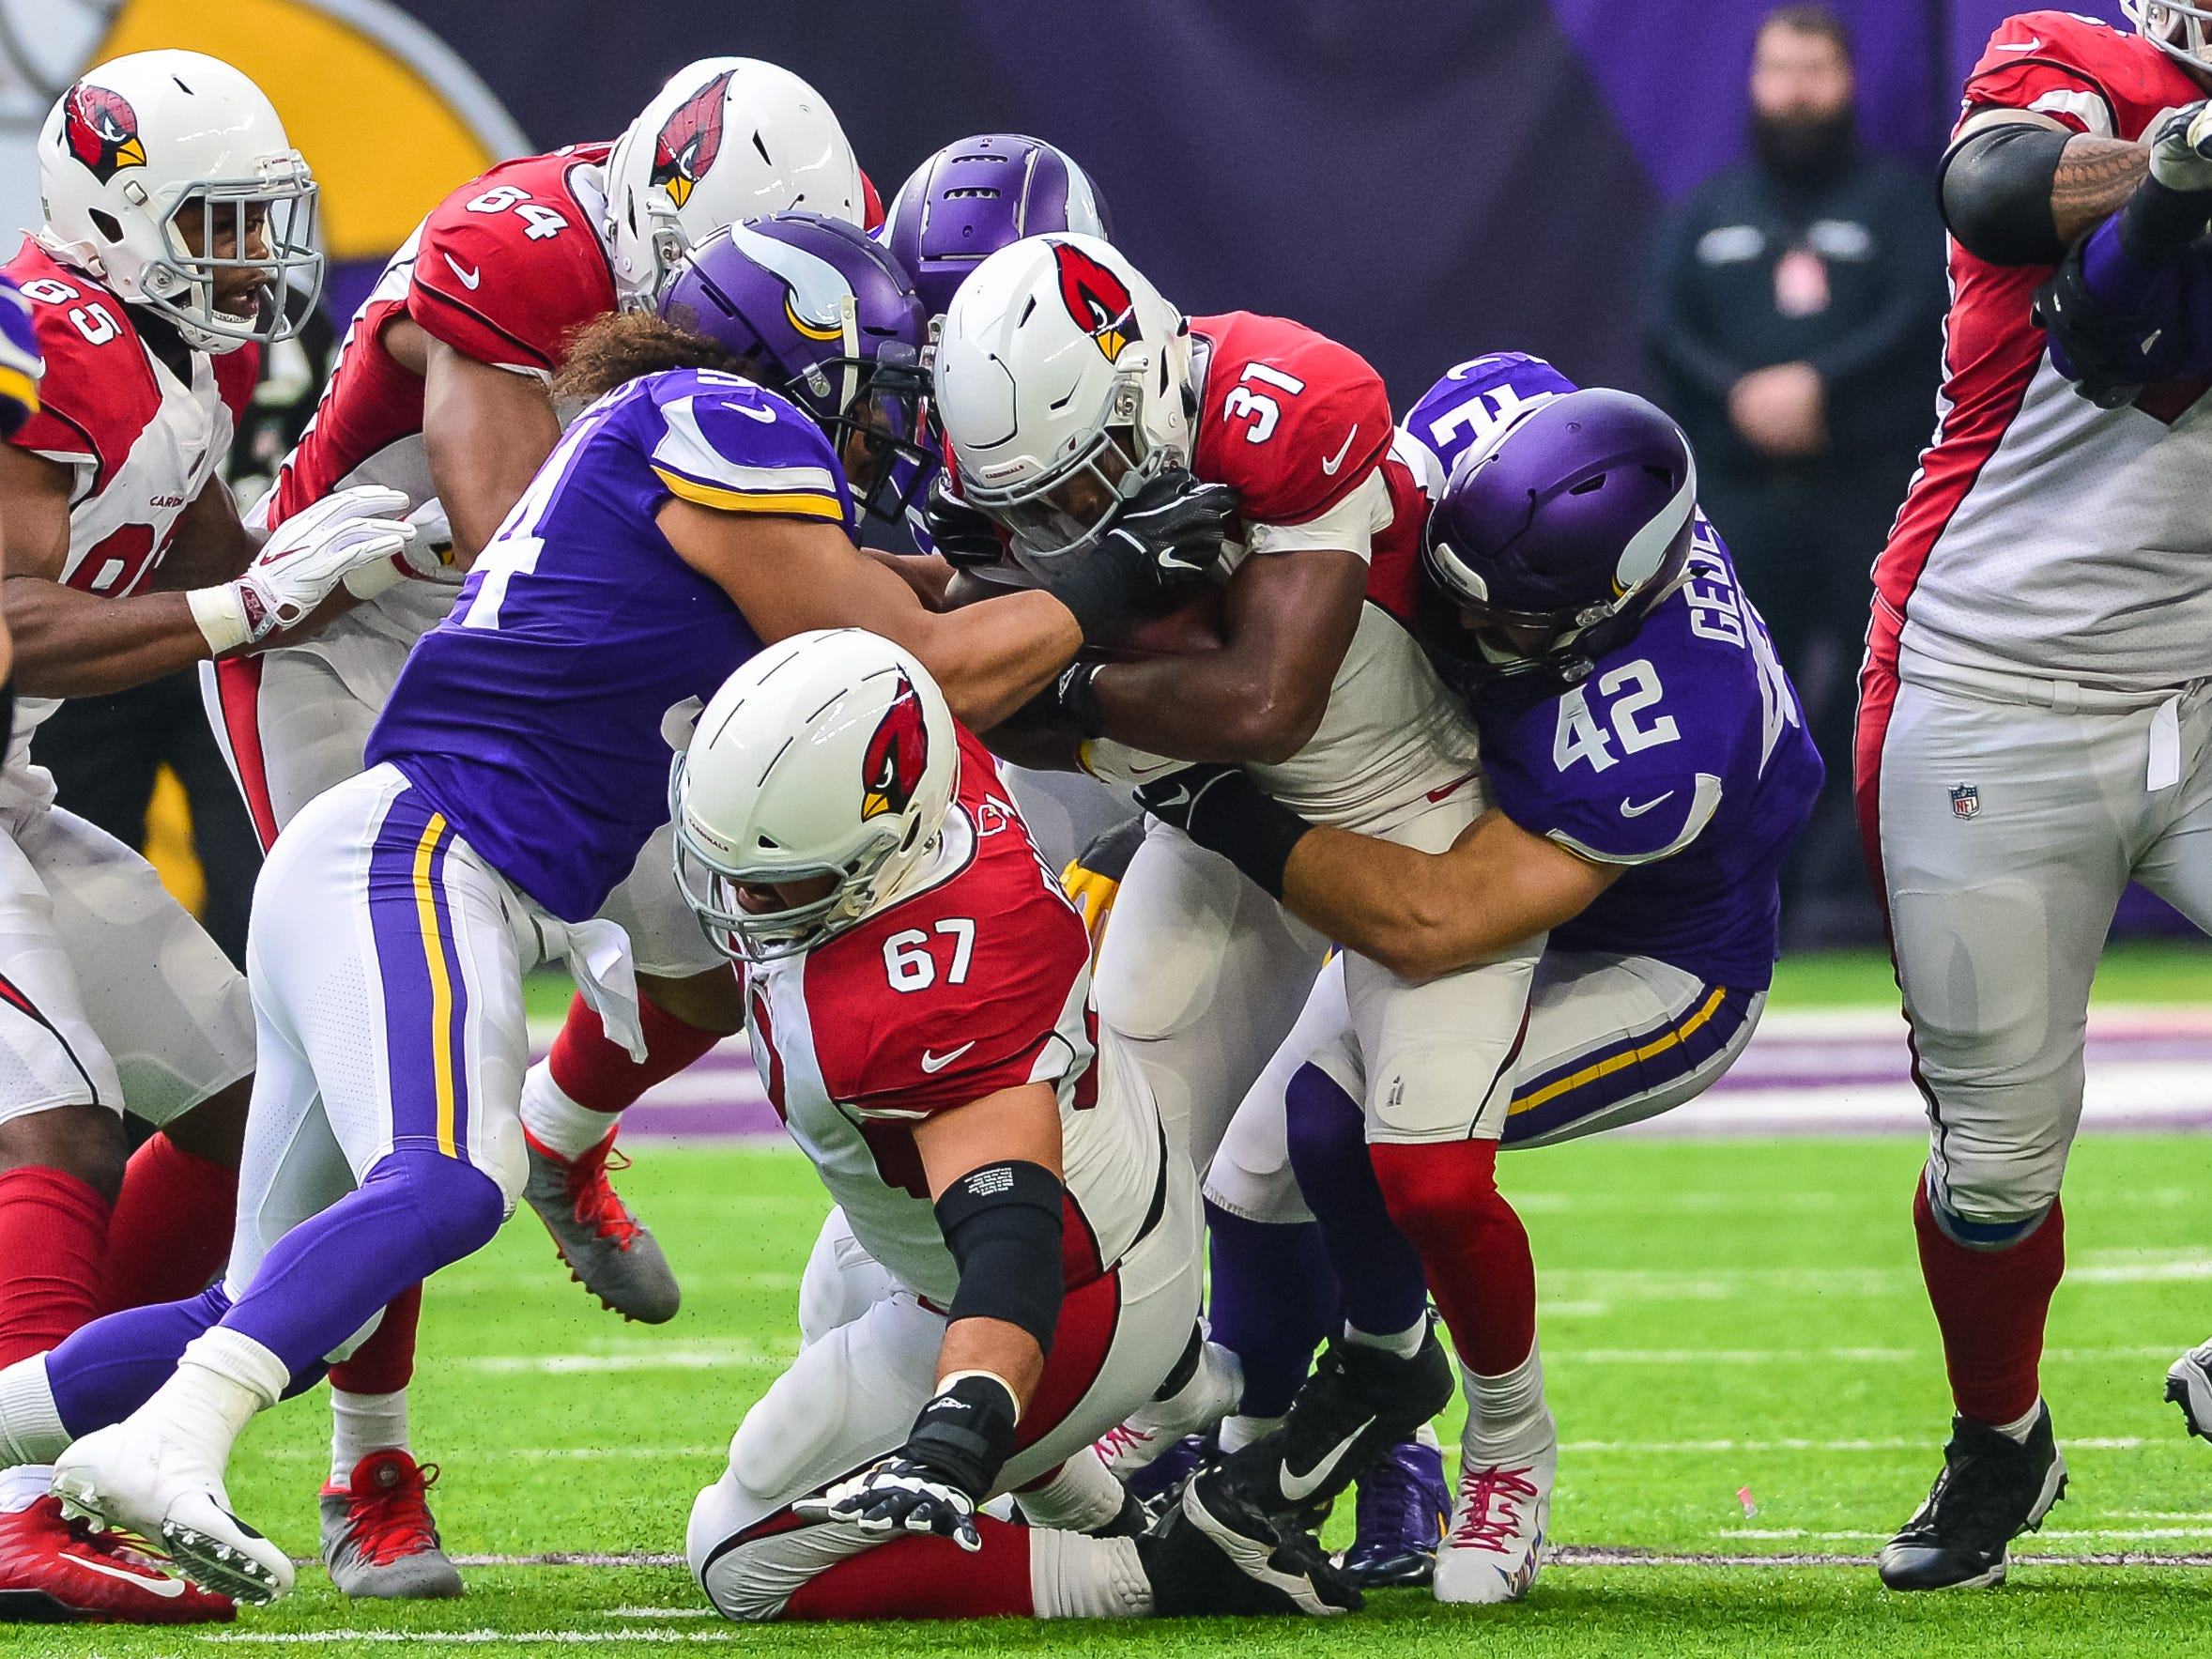 Oct 14, 2018; Minneapolis, MN, USA; Arizona Cardinals cornerback Patrick Peterson (21) is tackled by Minnesota Vikings linebacker Ben Gedeon (42) and linebacker Eric Kendricks (54) during the first quarter at U.S. Bank Stadium. Mandatory Credit: Jeffrey Becker-USA TODAY Sports